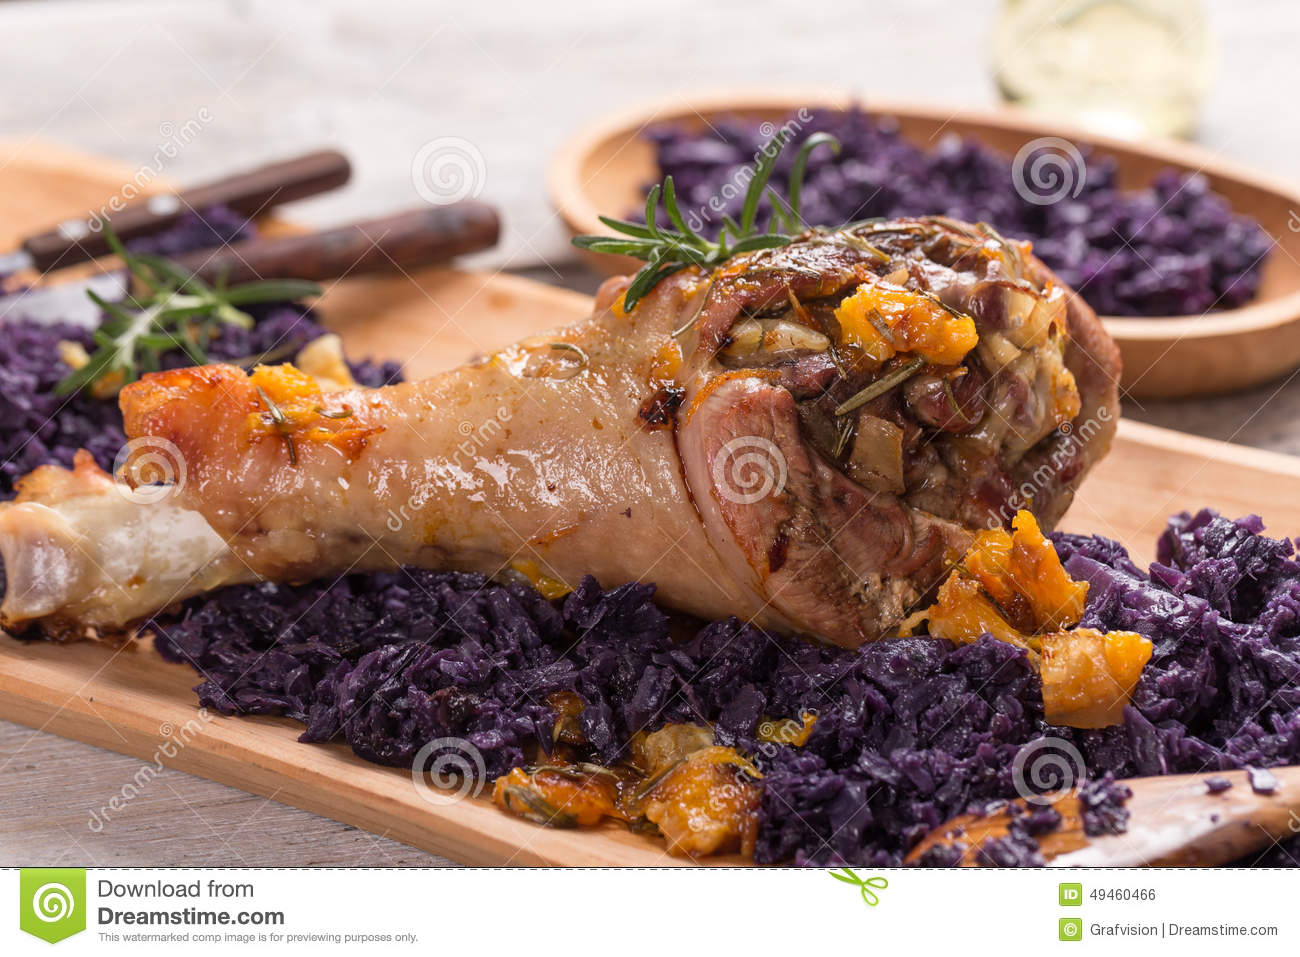 Roasted Turkey Drumstic Stock Photo - Image: 49460466